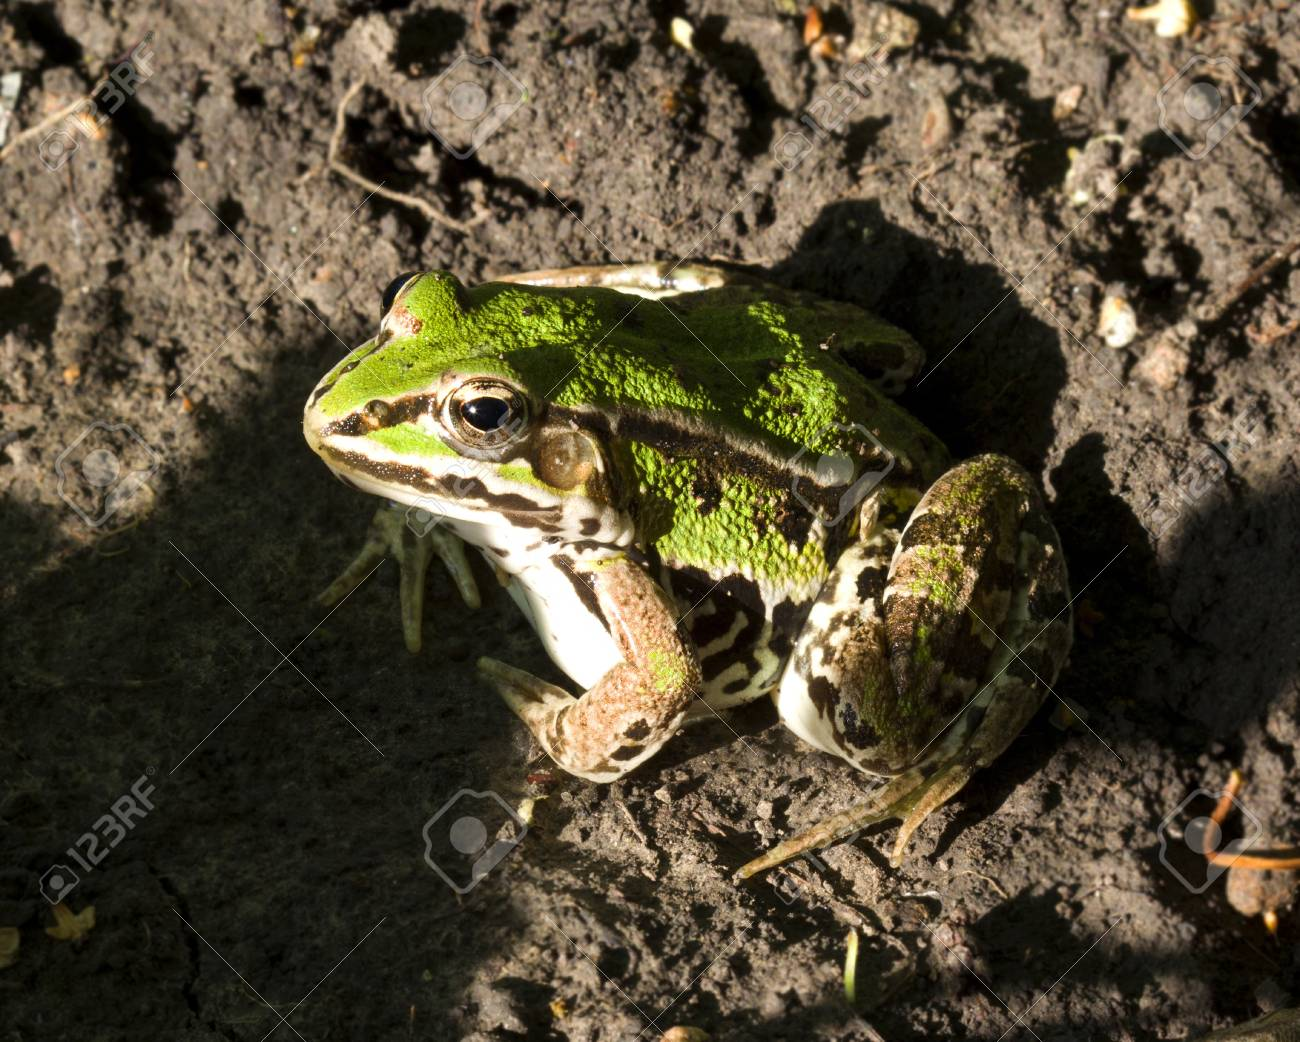 Pool Frog  Pelophylax lessonae  sitting on the ground  Close up Stock Photo - 14488791